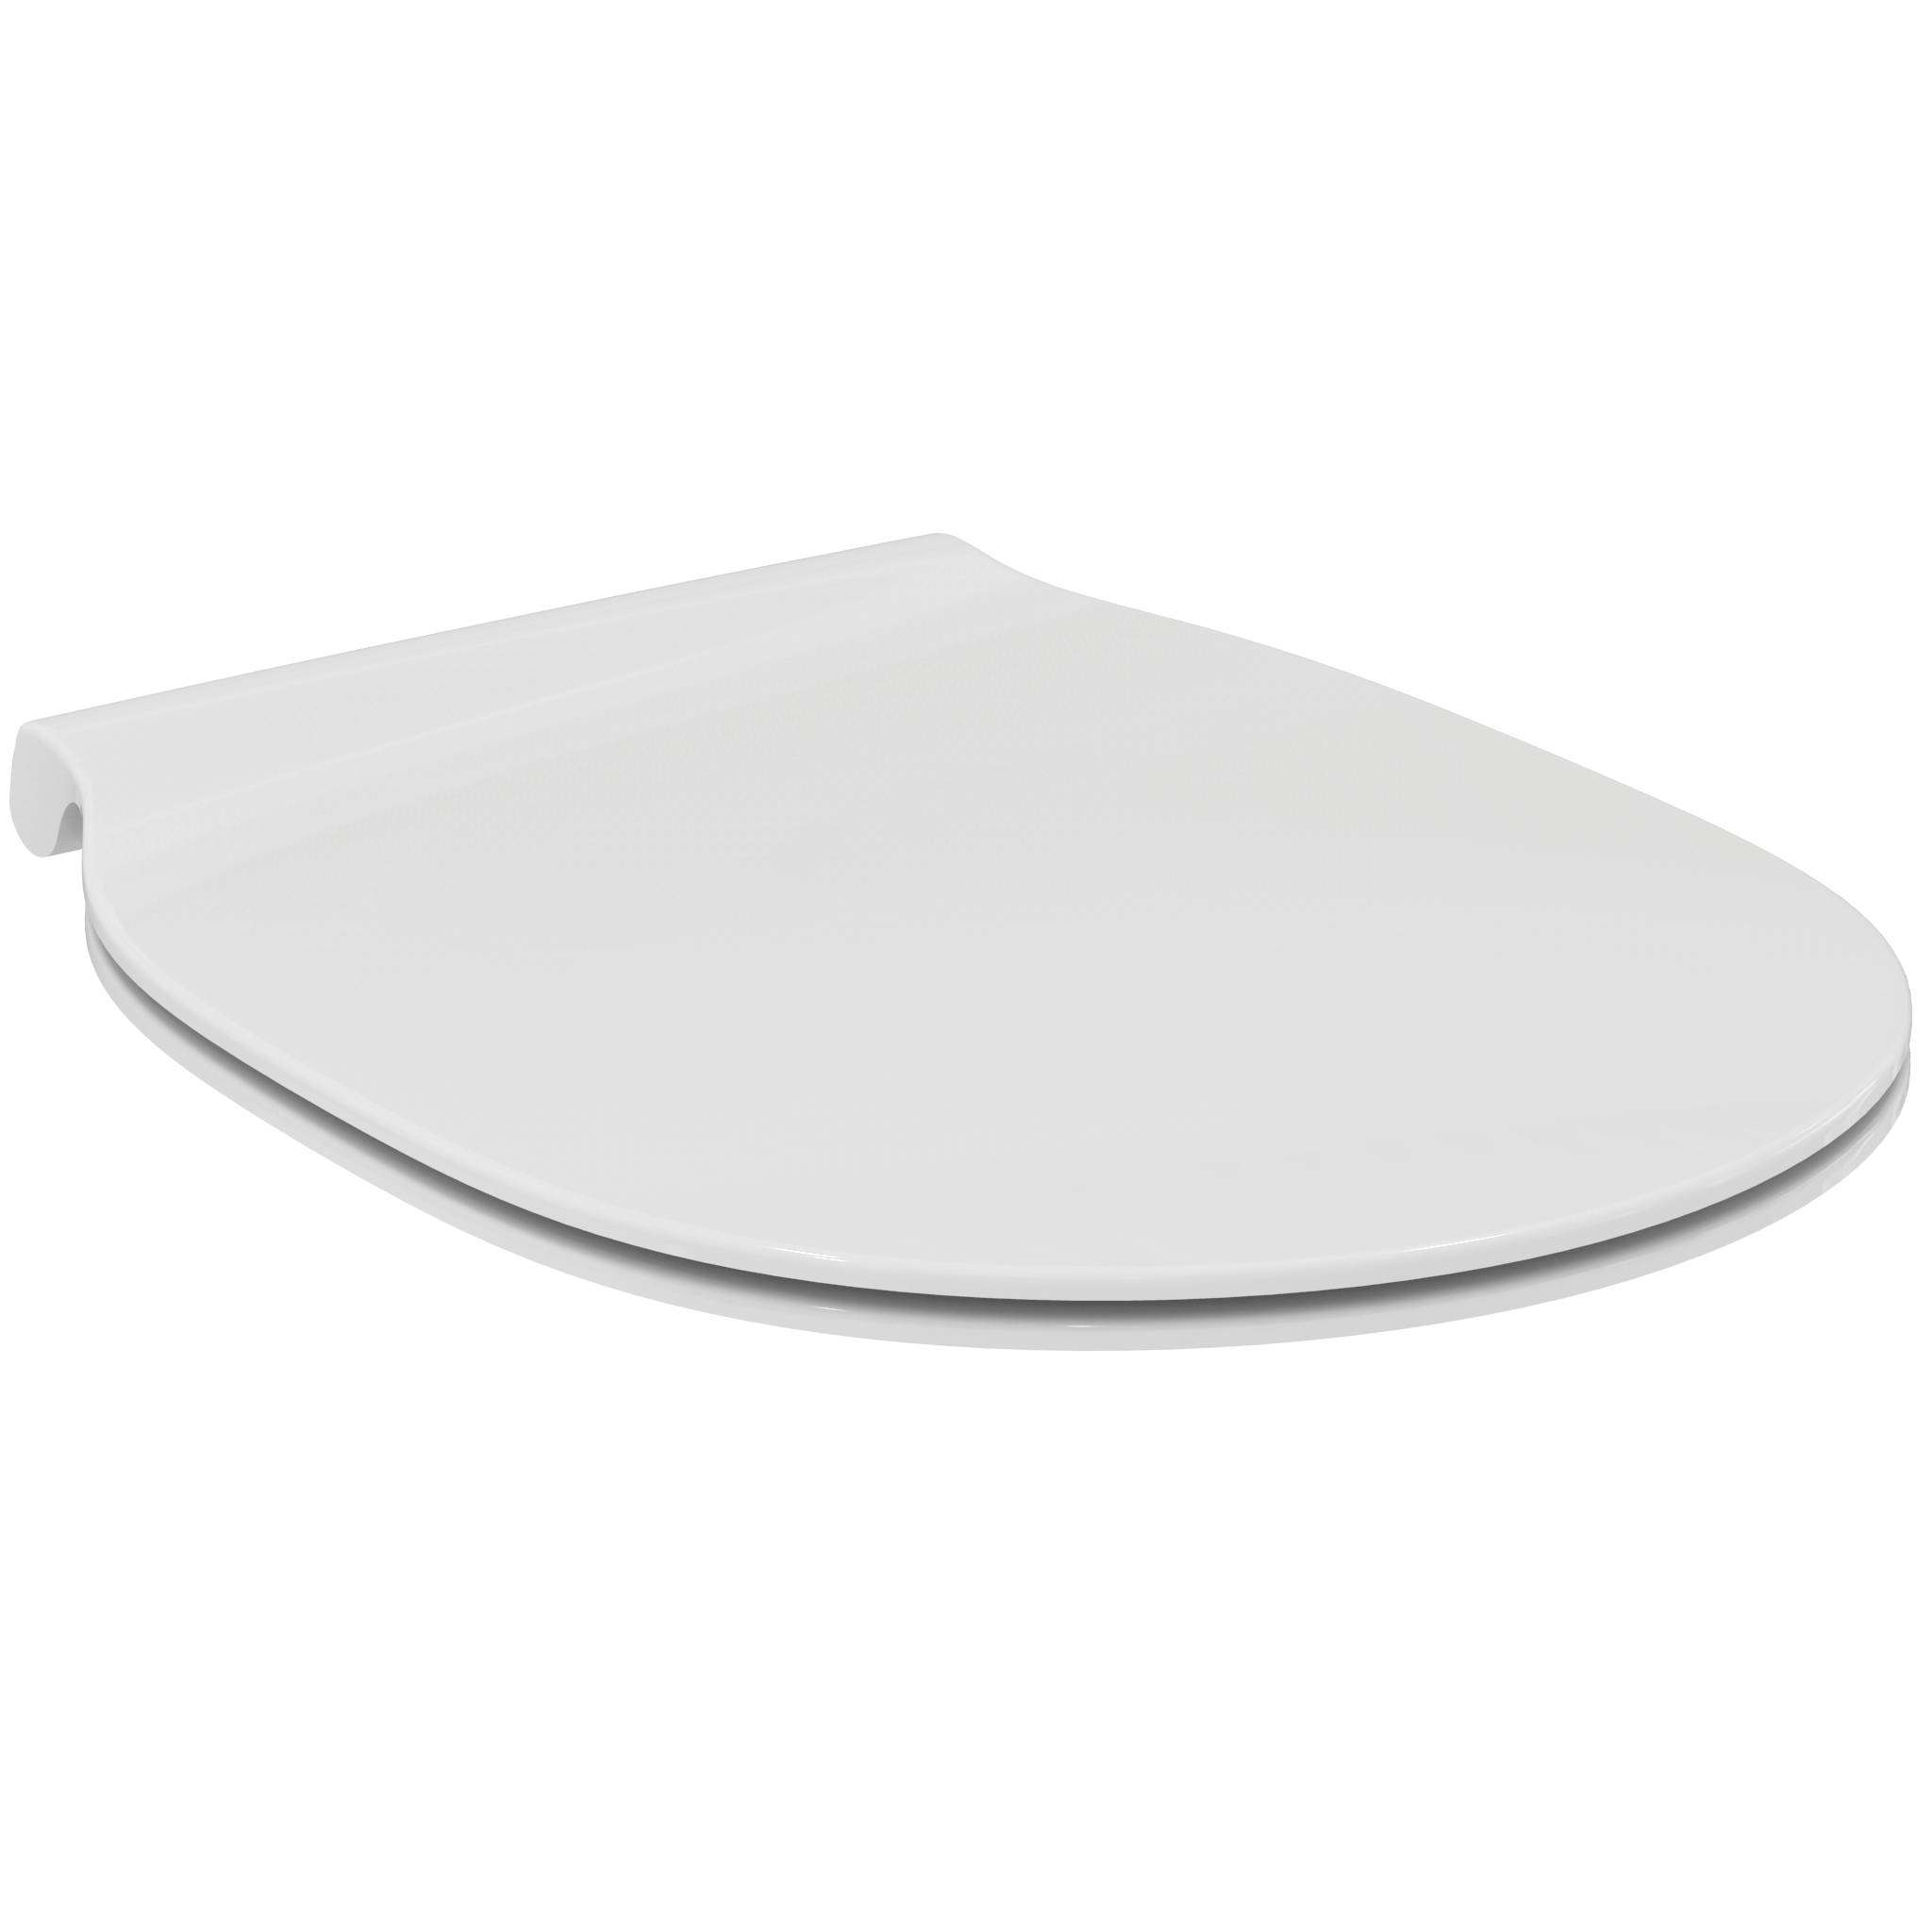 Connect Wc Ideal Standard D Shaped Toilet Seat Connect Air